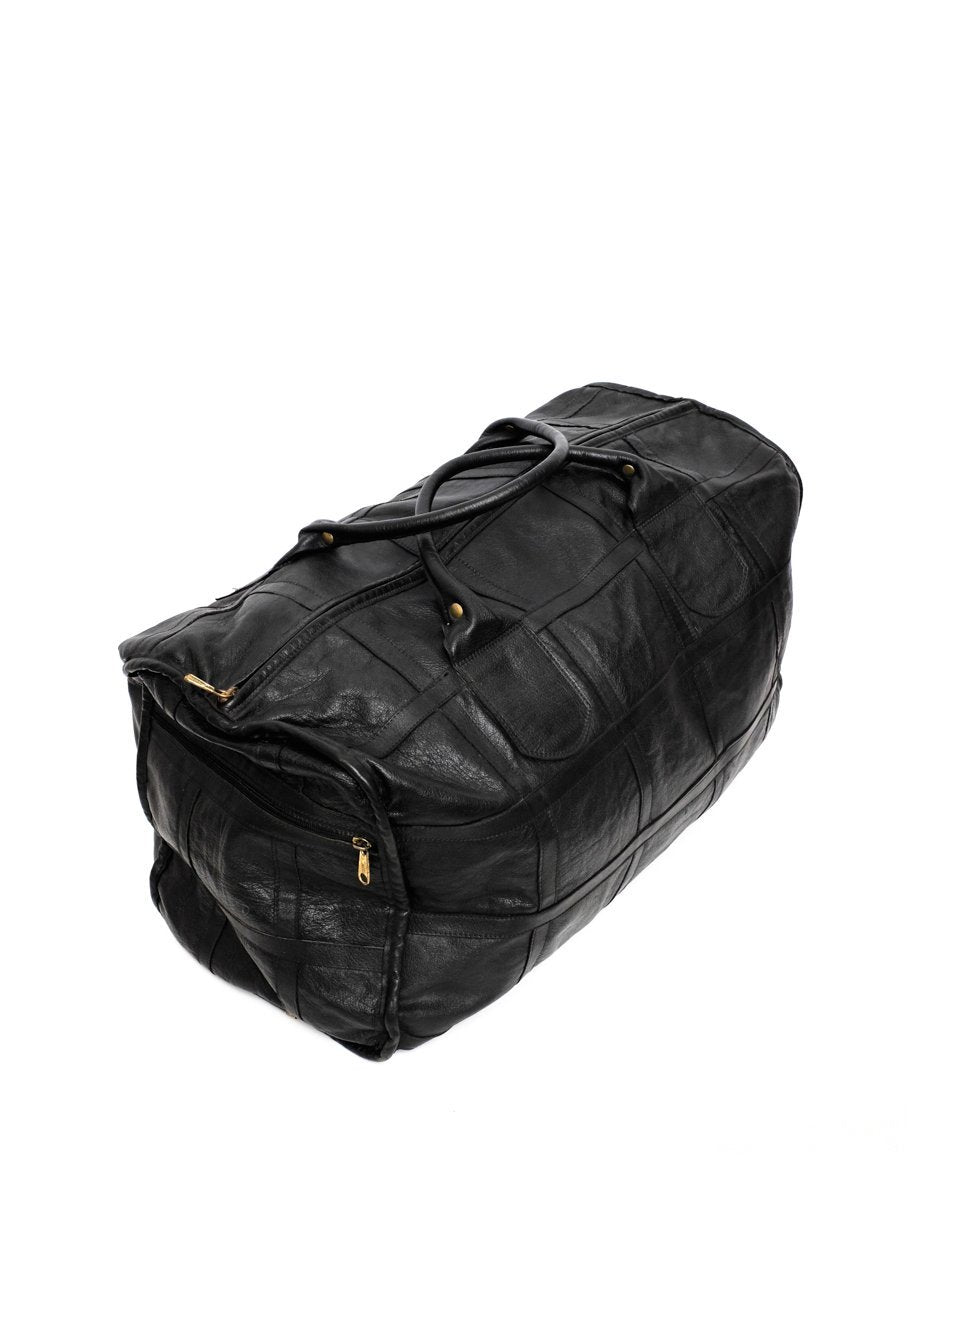 0501_XXL LEATHER BLACK WEEKENDER TRAVEL BAG